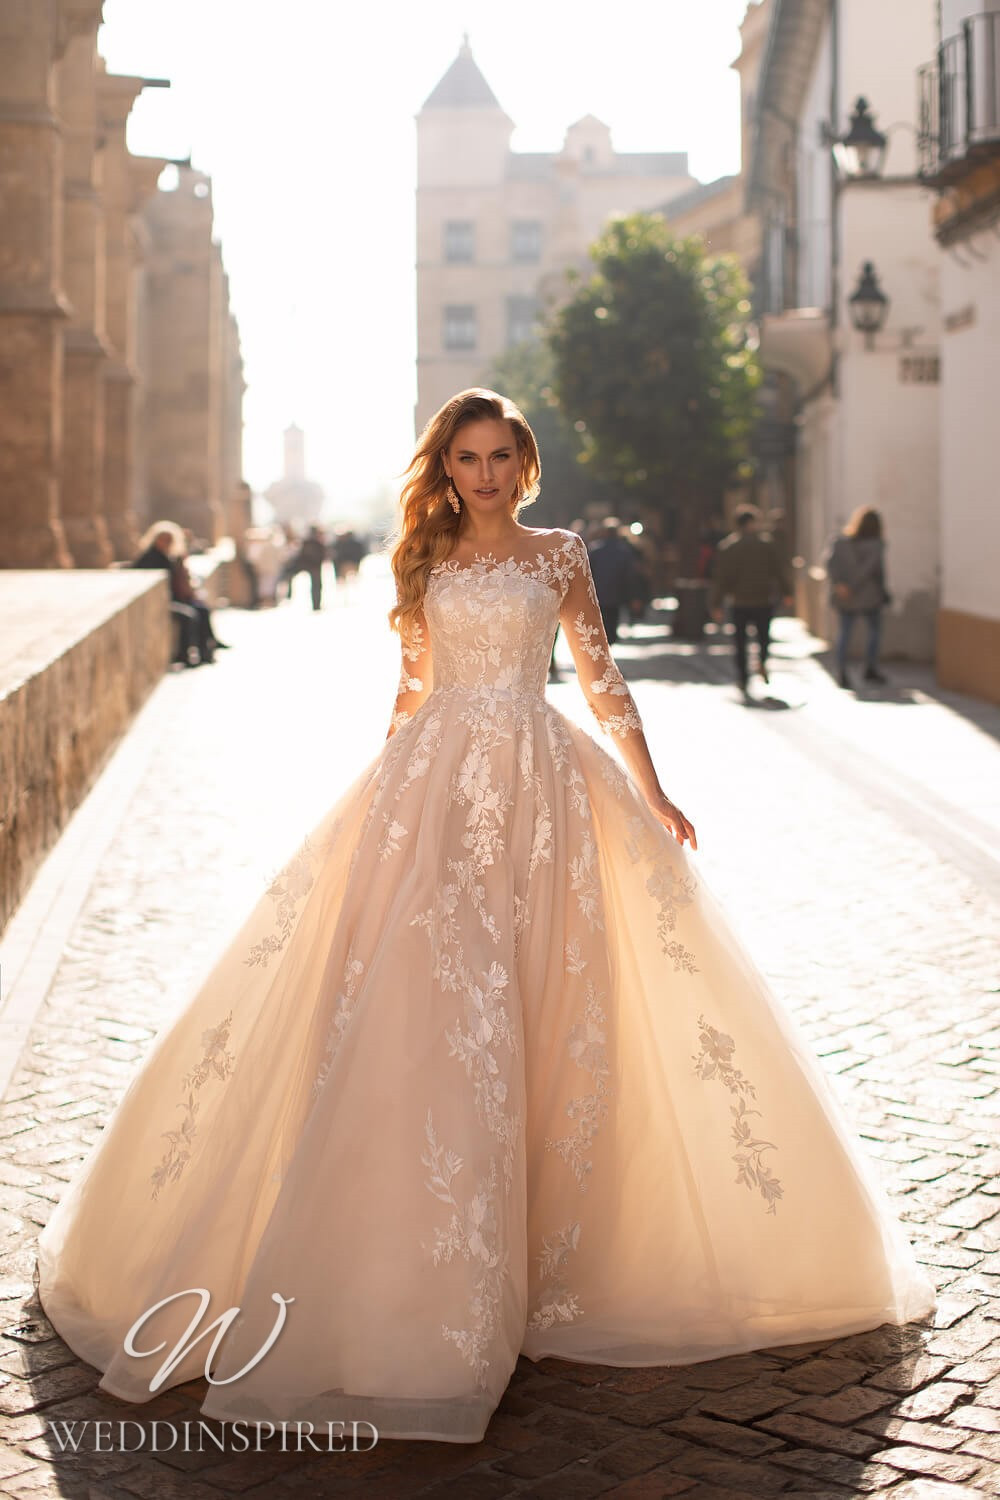 An Essential by Lussano 2021 blush lace princess wedding dress with long sleeves